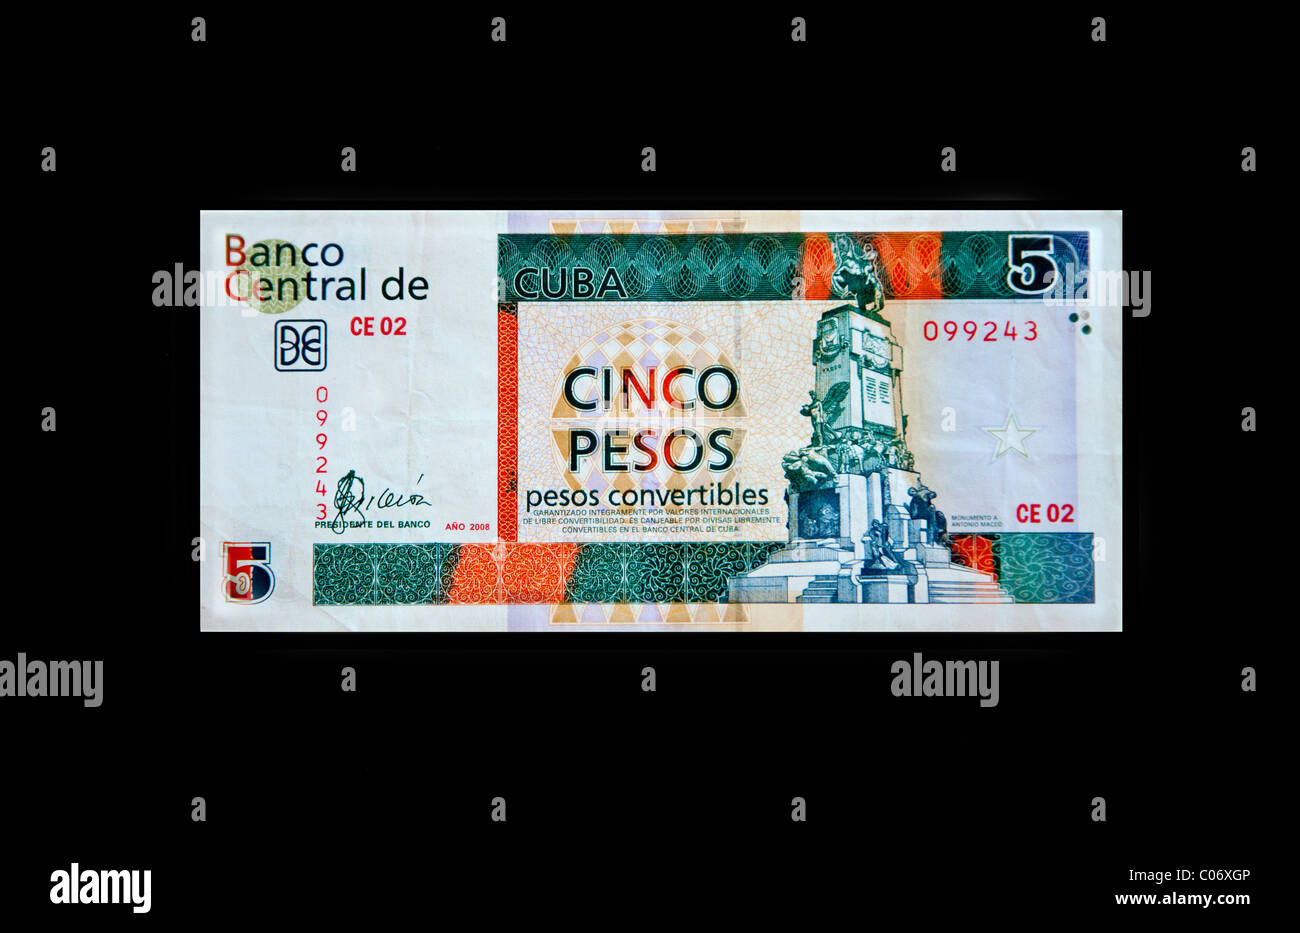 Cuba, Havana. 'Pesos Convertibles', the pesos used by tourists in Cuba. This is a 5 peso note. - Stock Image